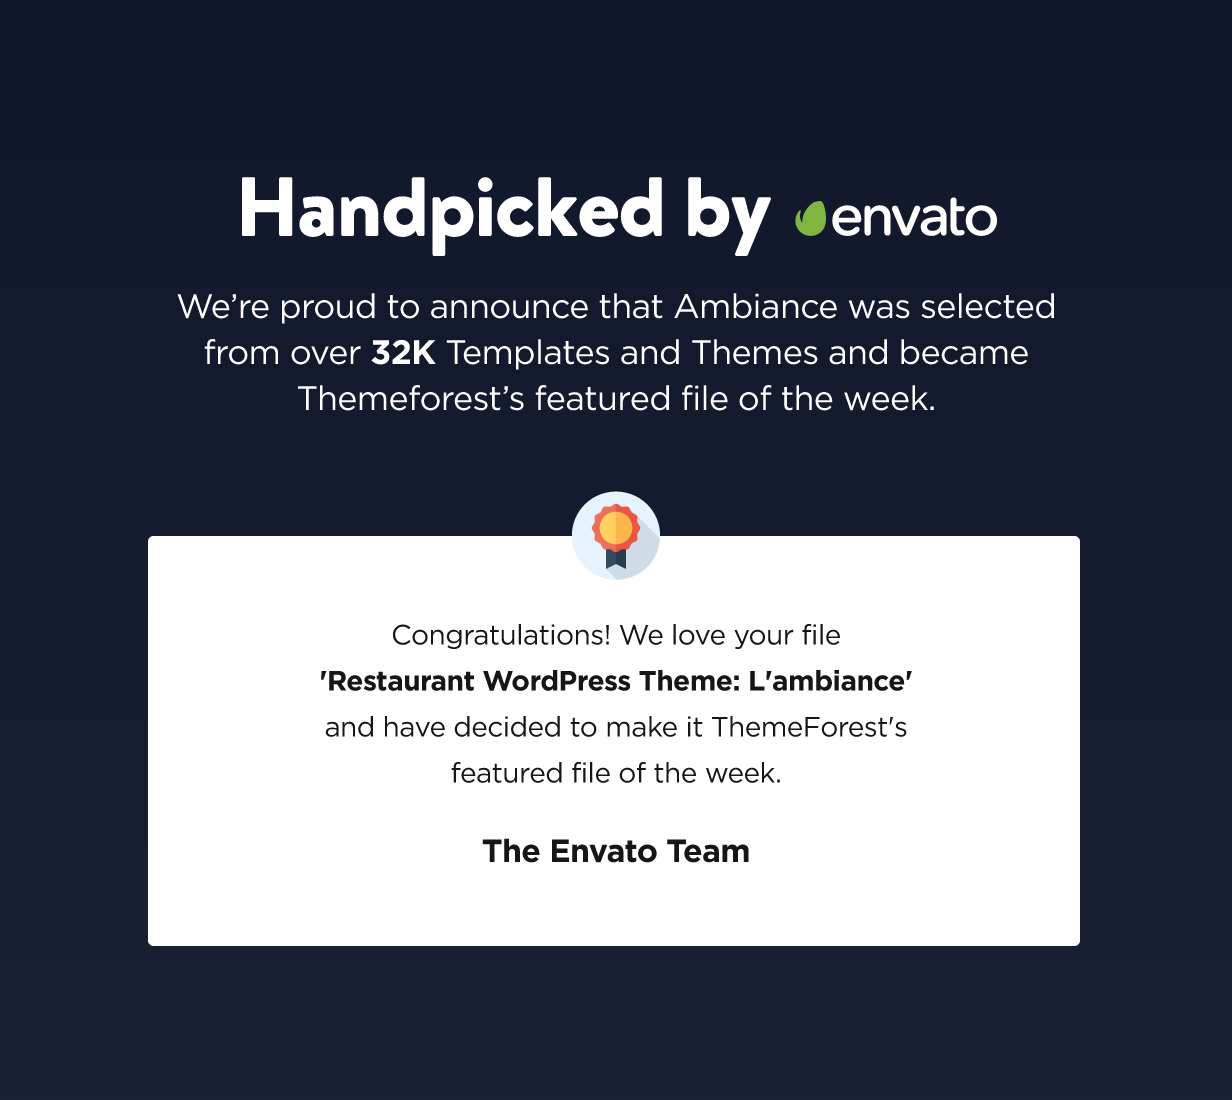 Handpicked by envato